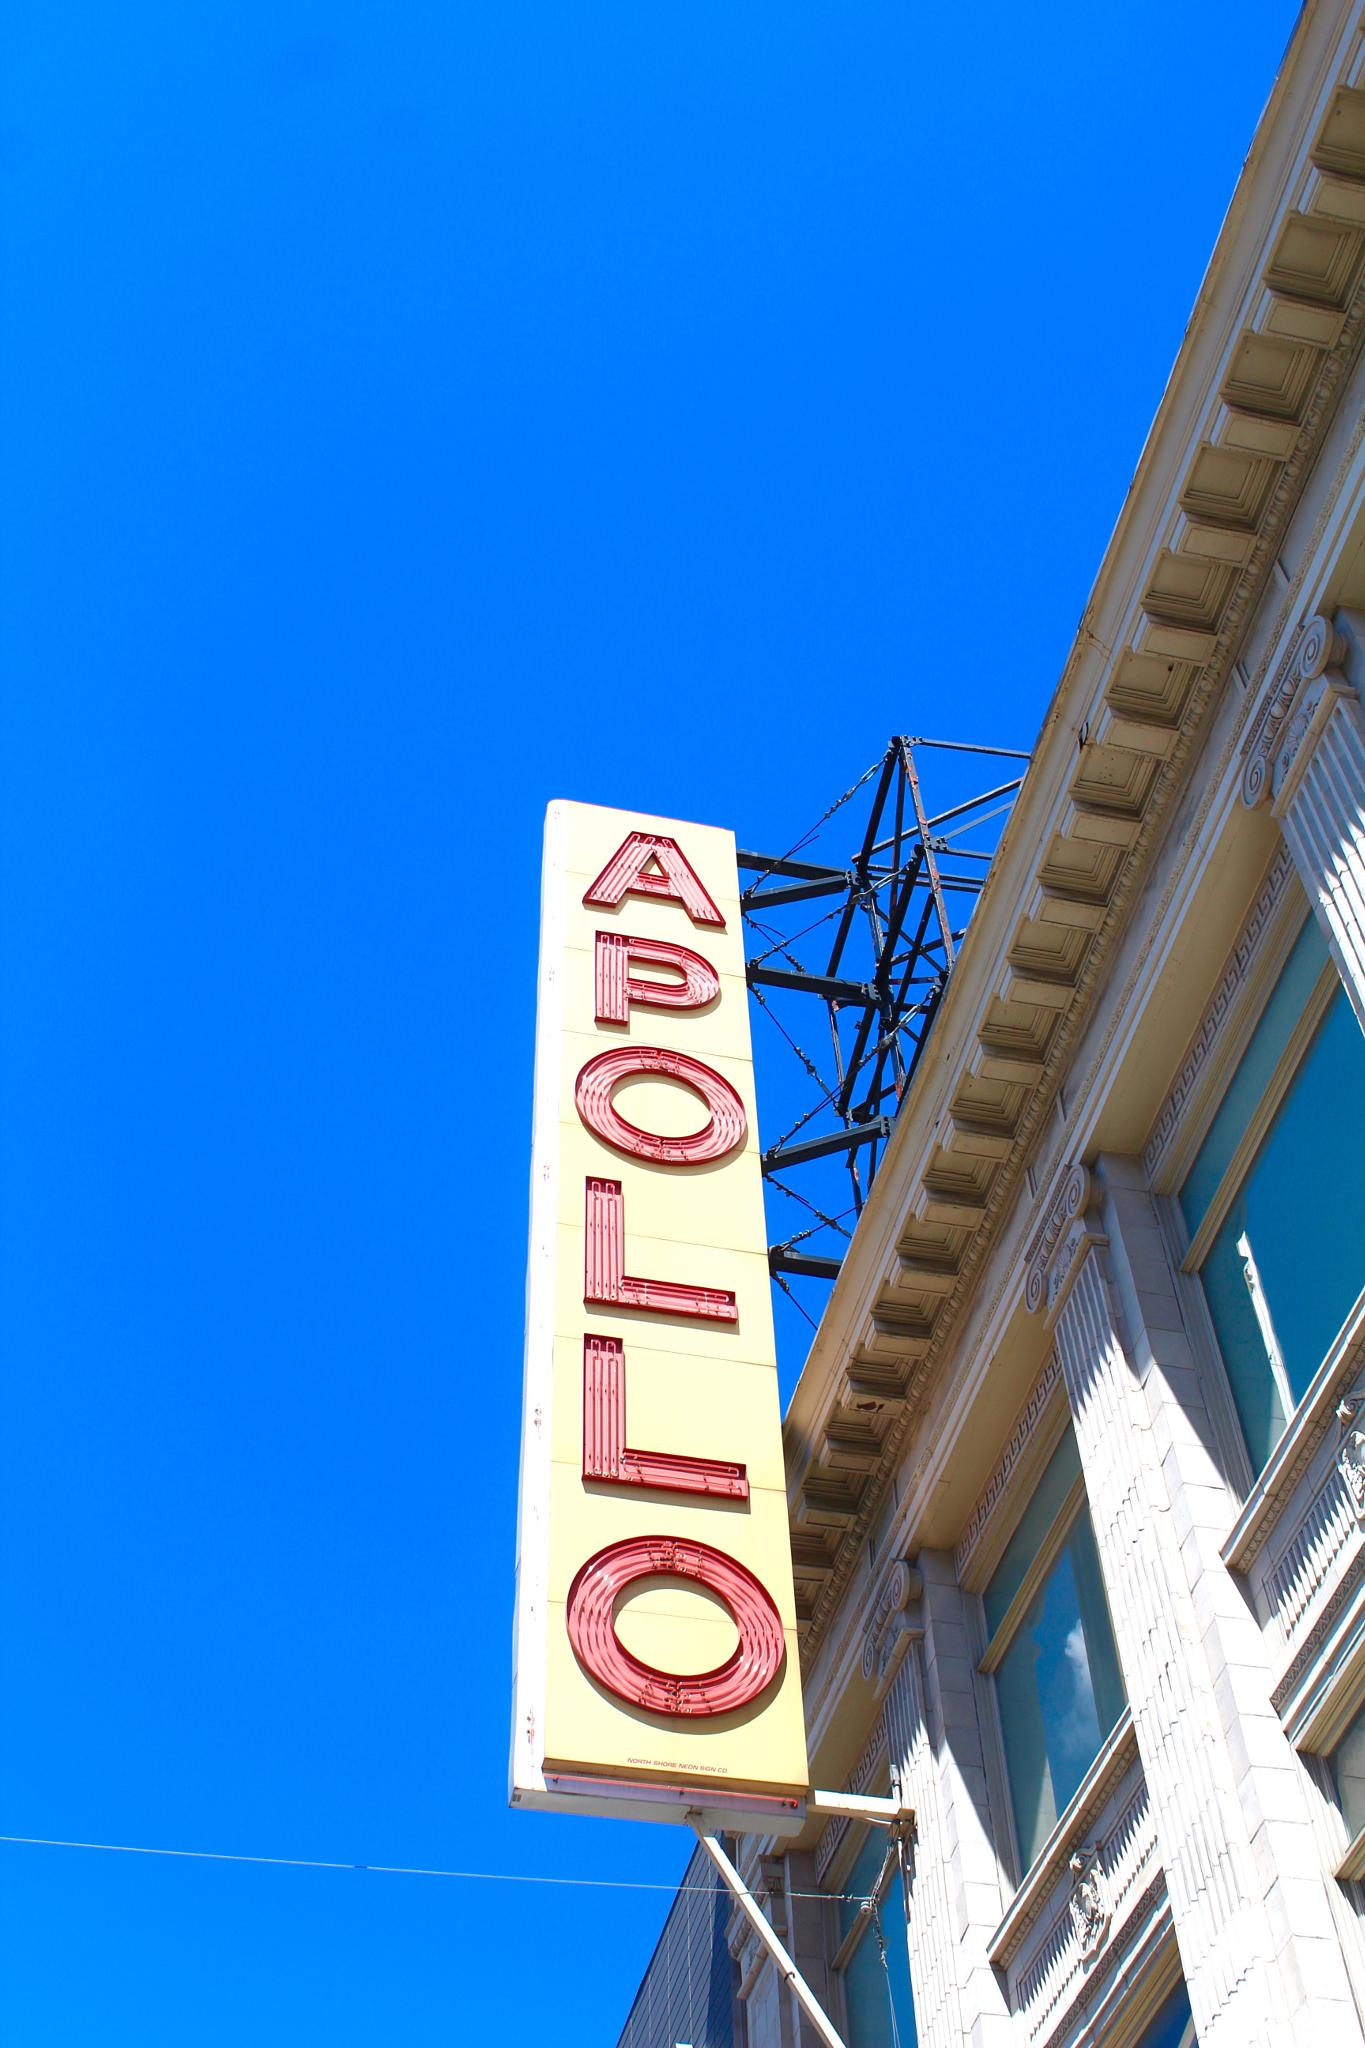 APOLLO by Snickandmephotography